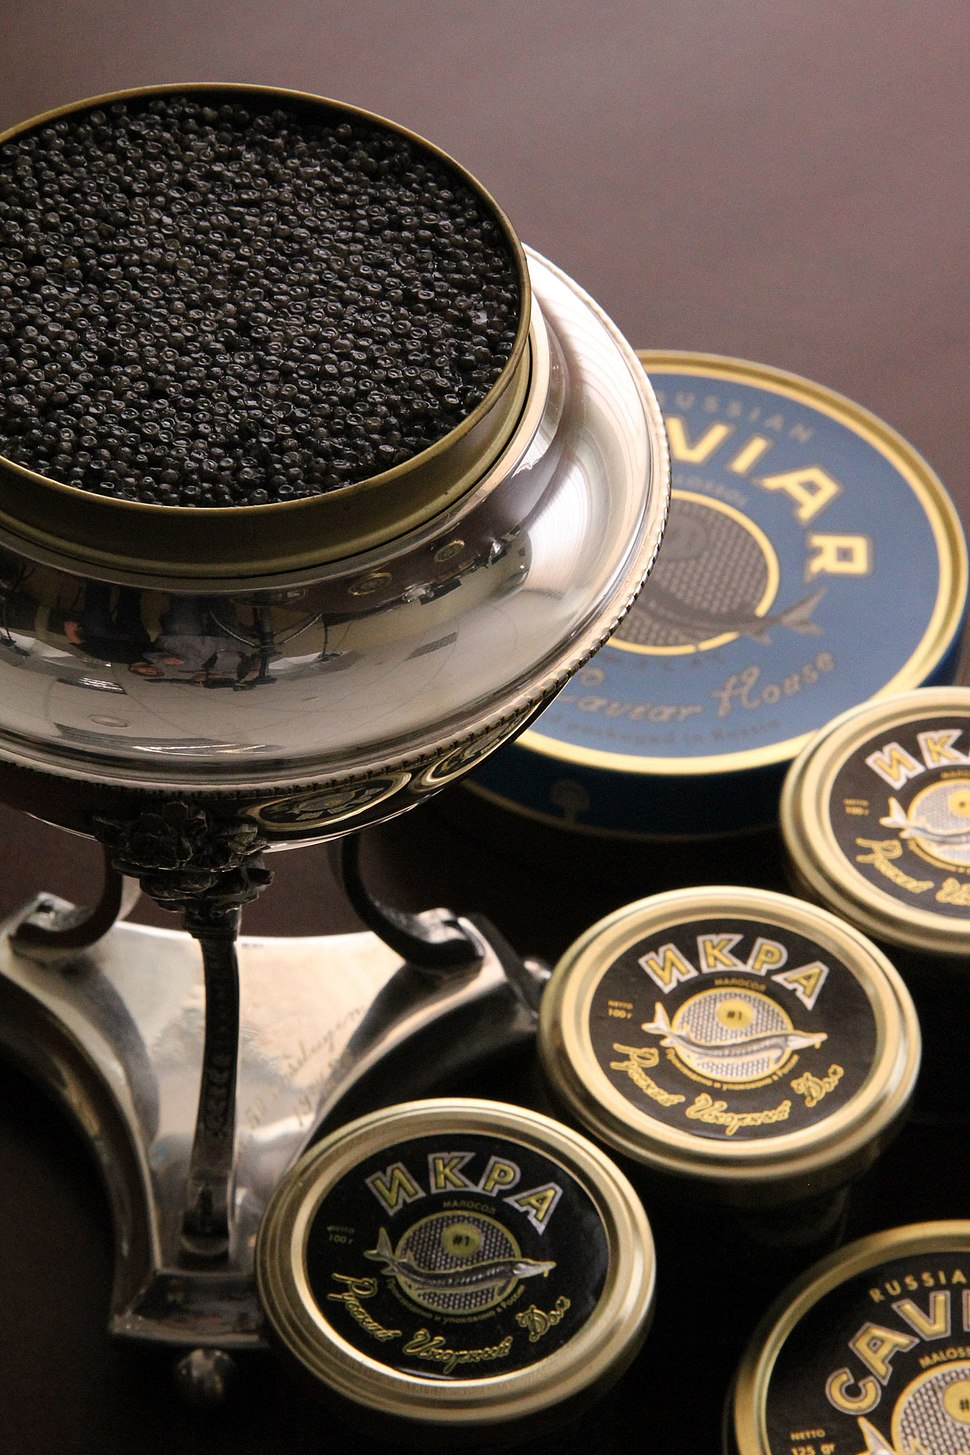 Russian Caviar House